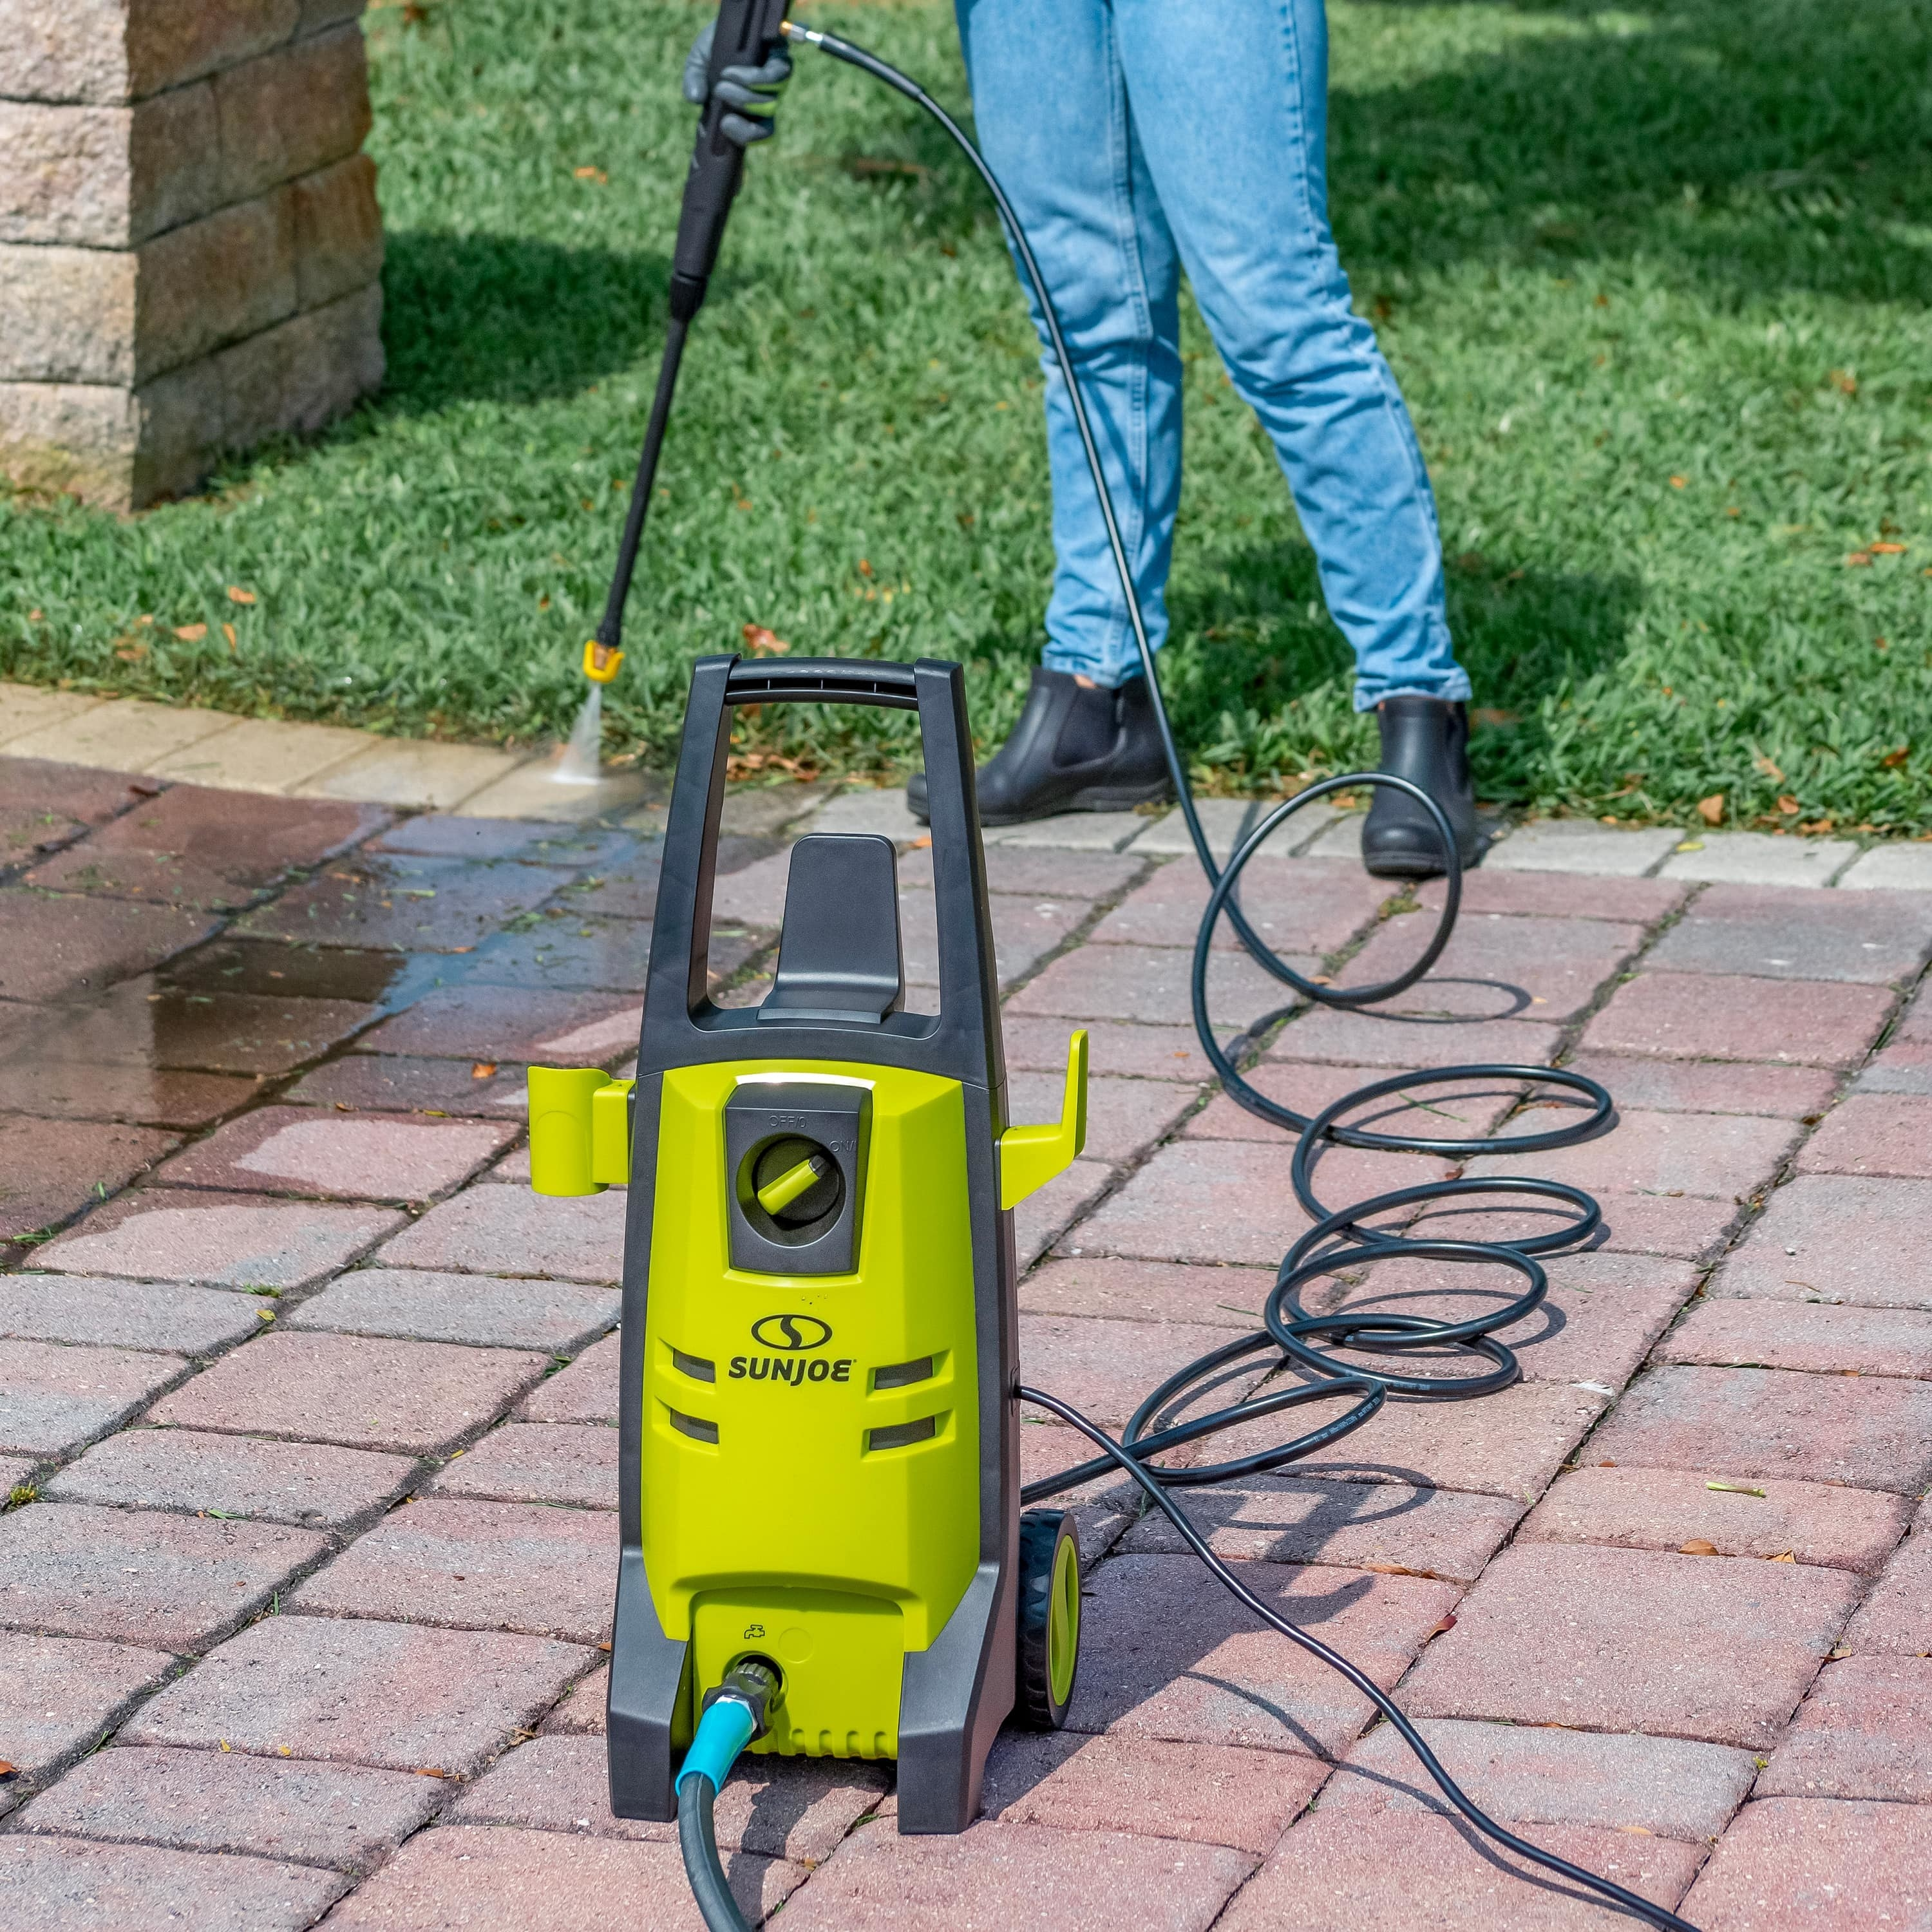 person using a sunjoe electric pressure washer to clean a driveway